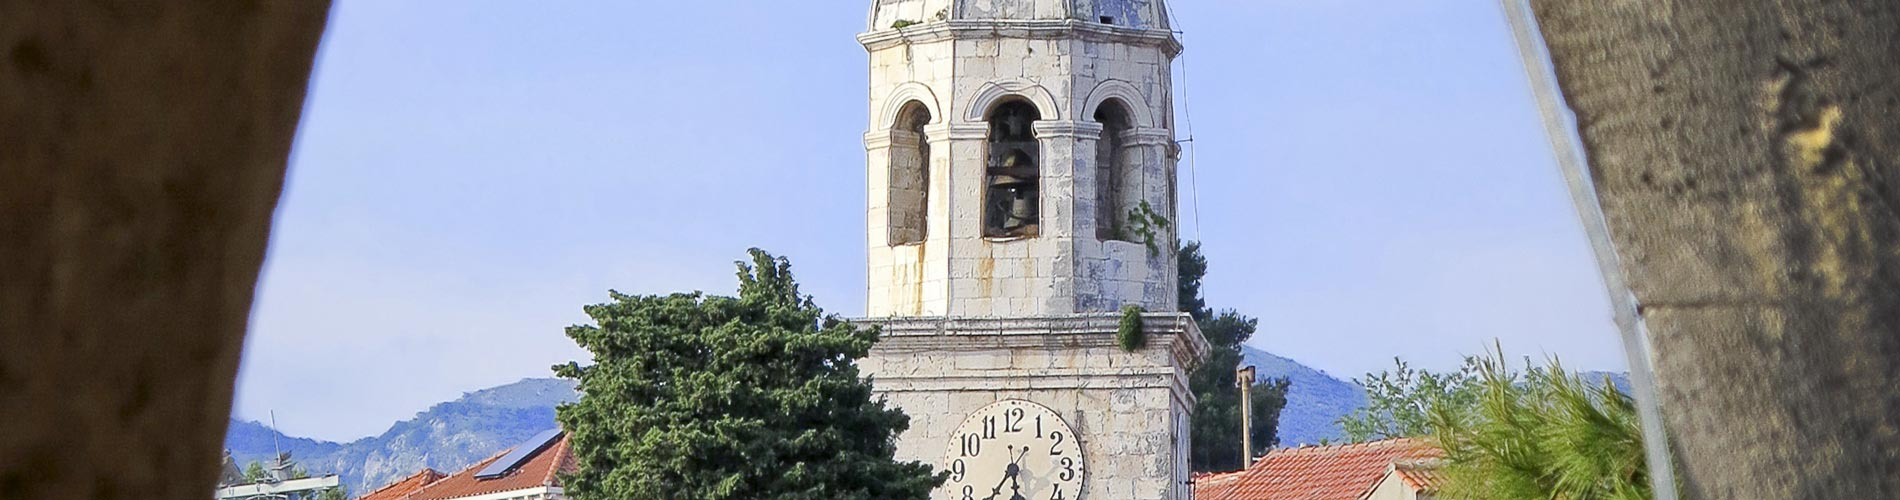 Tower at Cavtat Harbor in Dalmatia.jpg